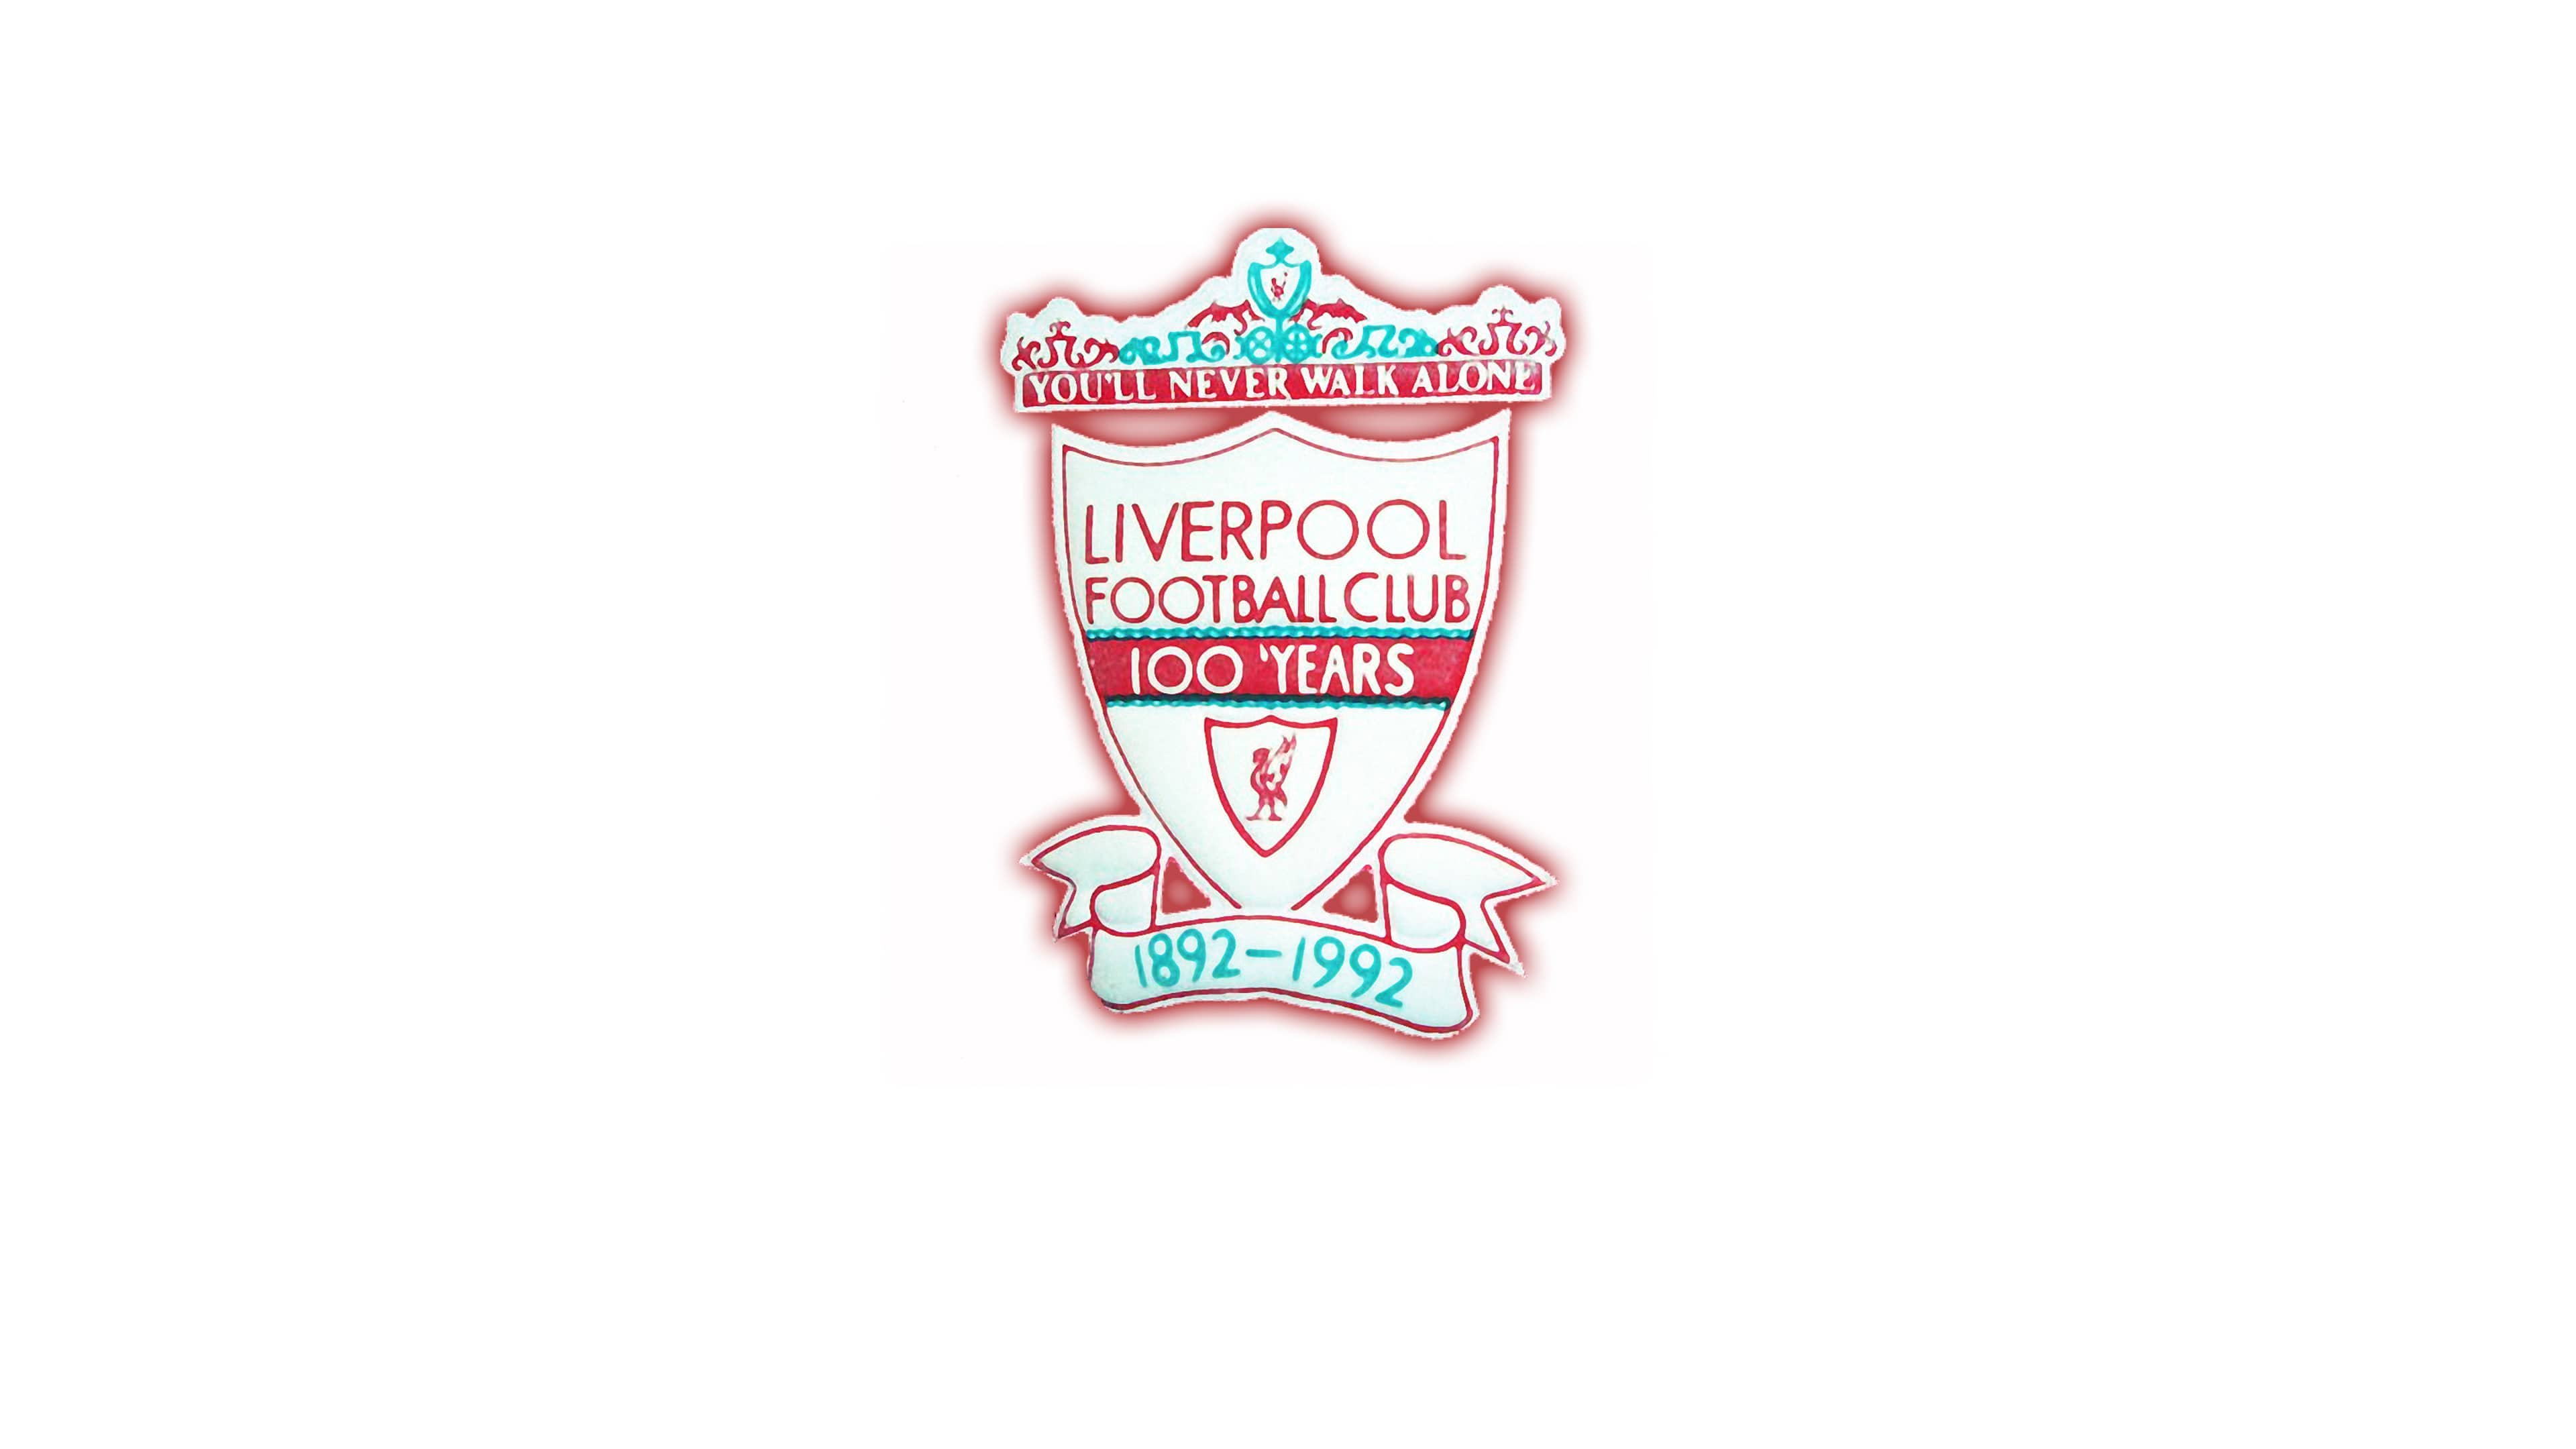 liverpool logo the most famous brands and company logos in the world liverpool logo the most famous brands